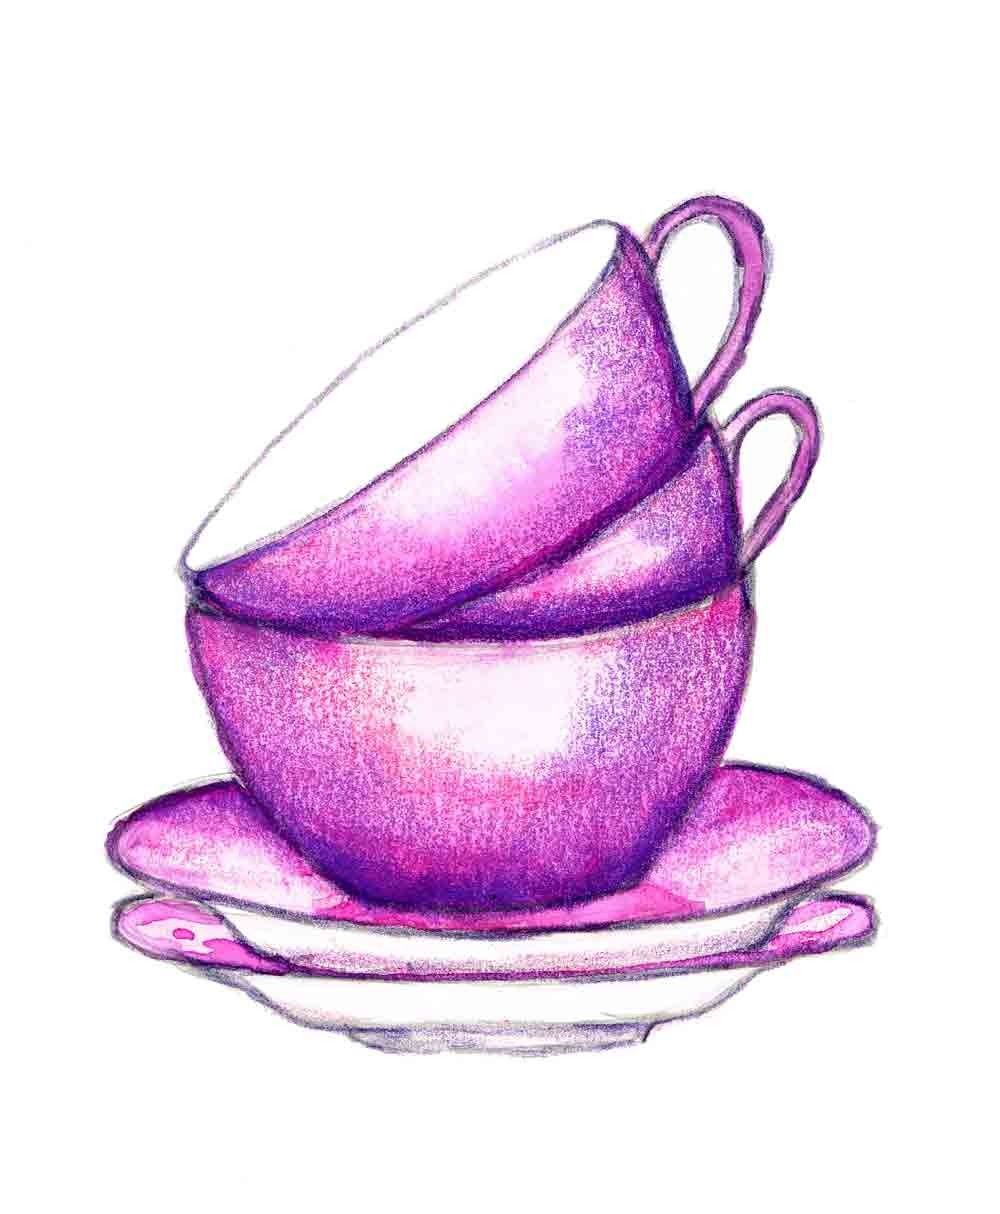 Tea-Time-No-2-purple-stack-kw.jpg